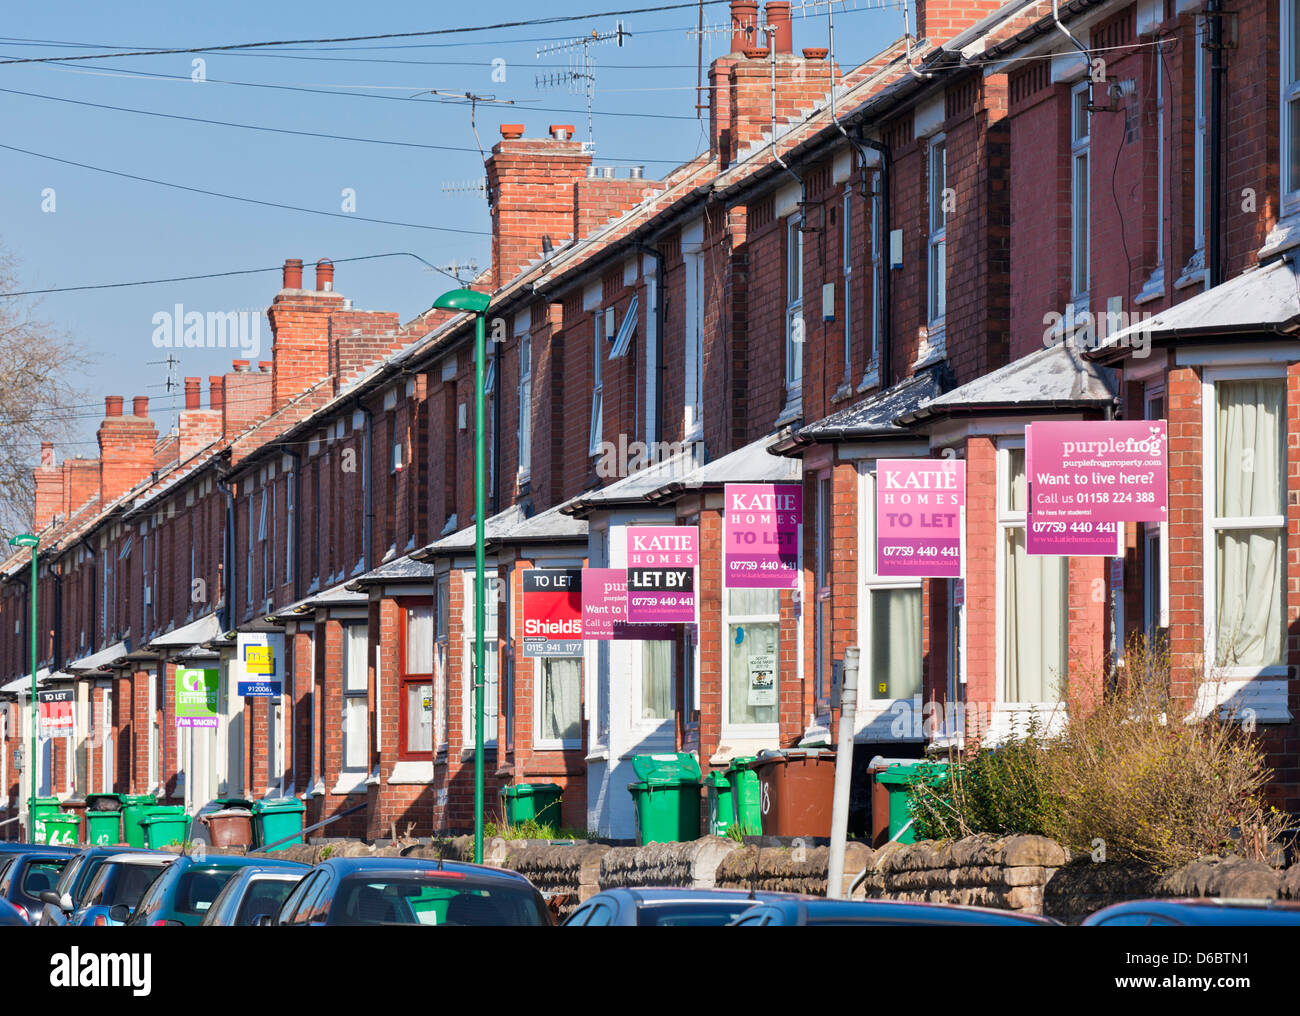 For sale and for rent signs in a residential area mainly for the student population of Nottingham and trent University Stock Photo